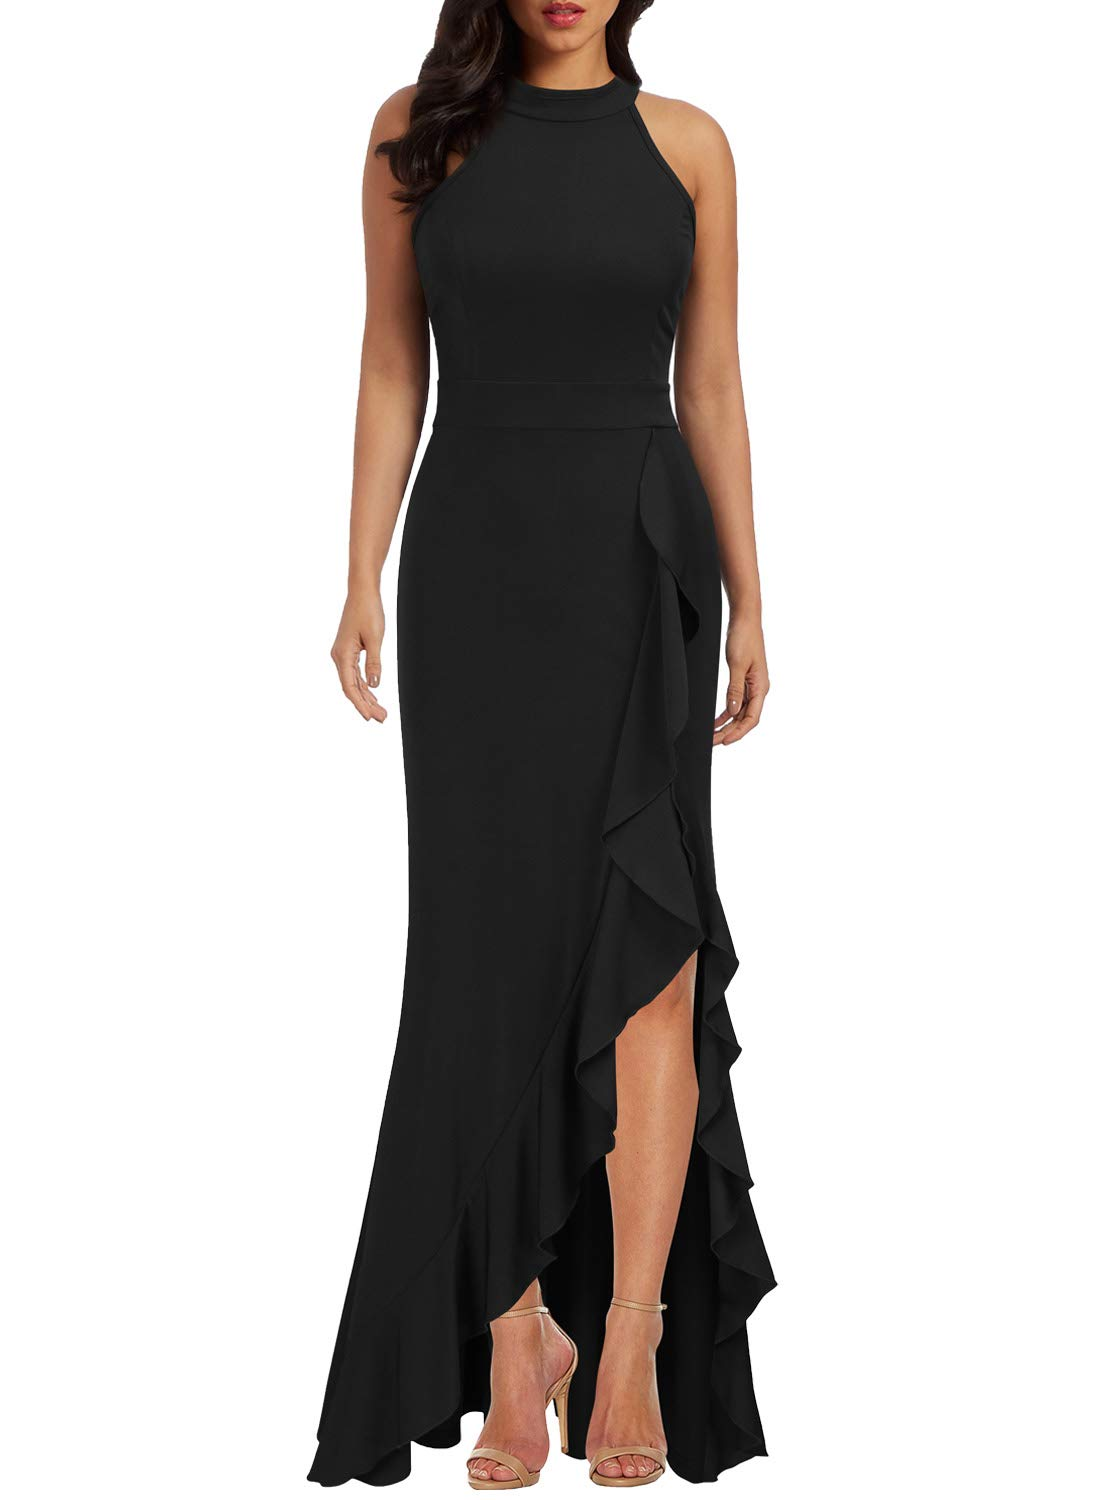 Party Dresses - Women's High Neck Split Bodycon Mermaid Evening Cocktail Long Dress